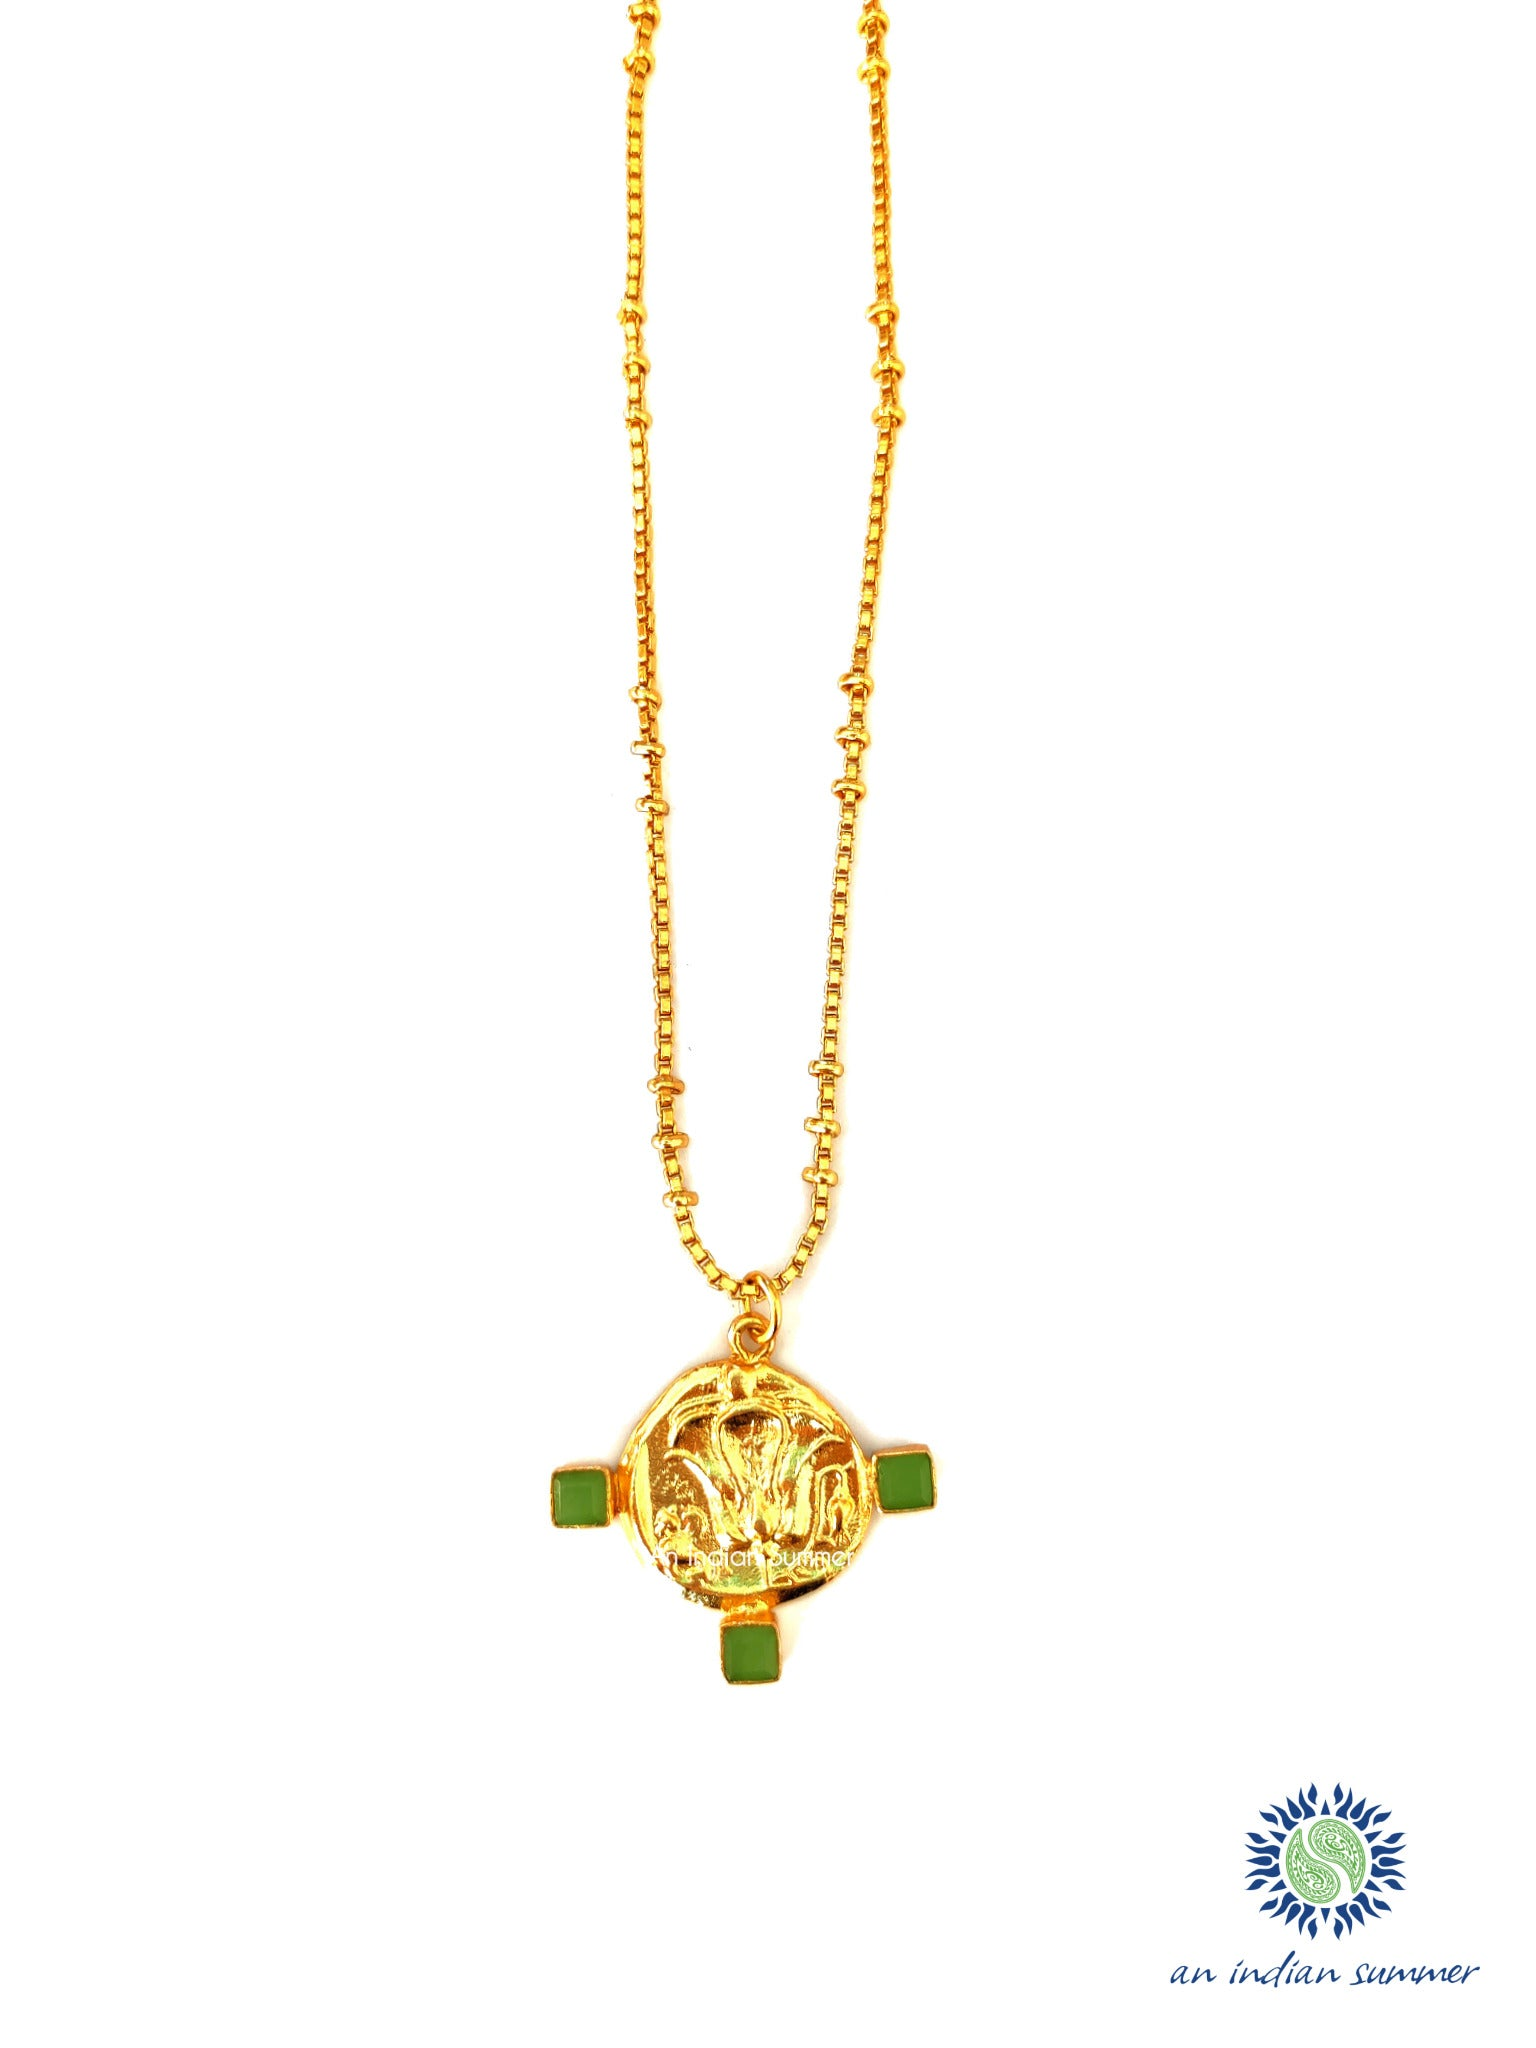 Talisman Medal Necklace - Lotus | Green Jade | 22 Carat Gold Plated Semi Precious Stones | An Indian Summer | Seasonless Timeless Sustainable Ethical Authentic Artisan Conscious Clothing Lifestyle Brand